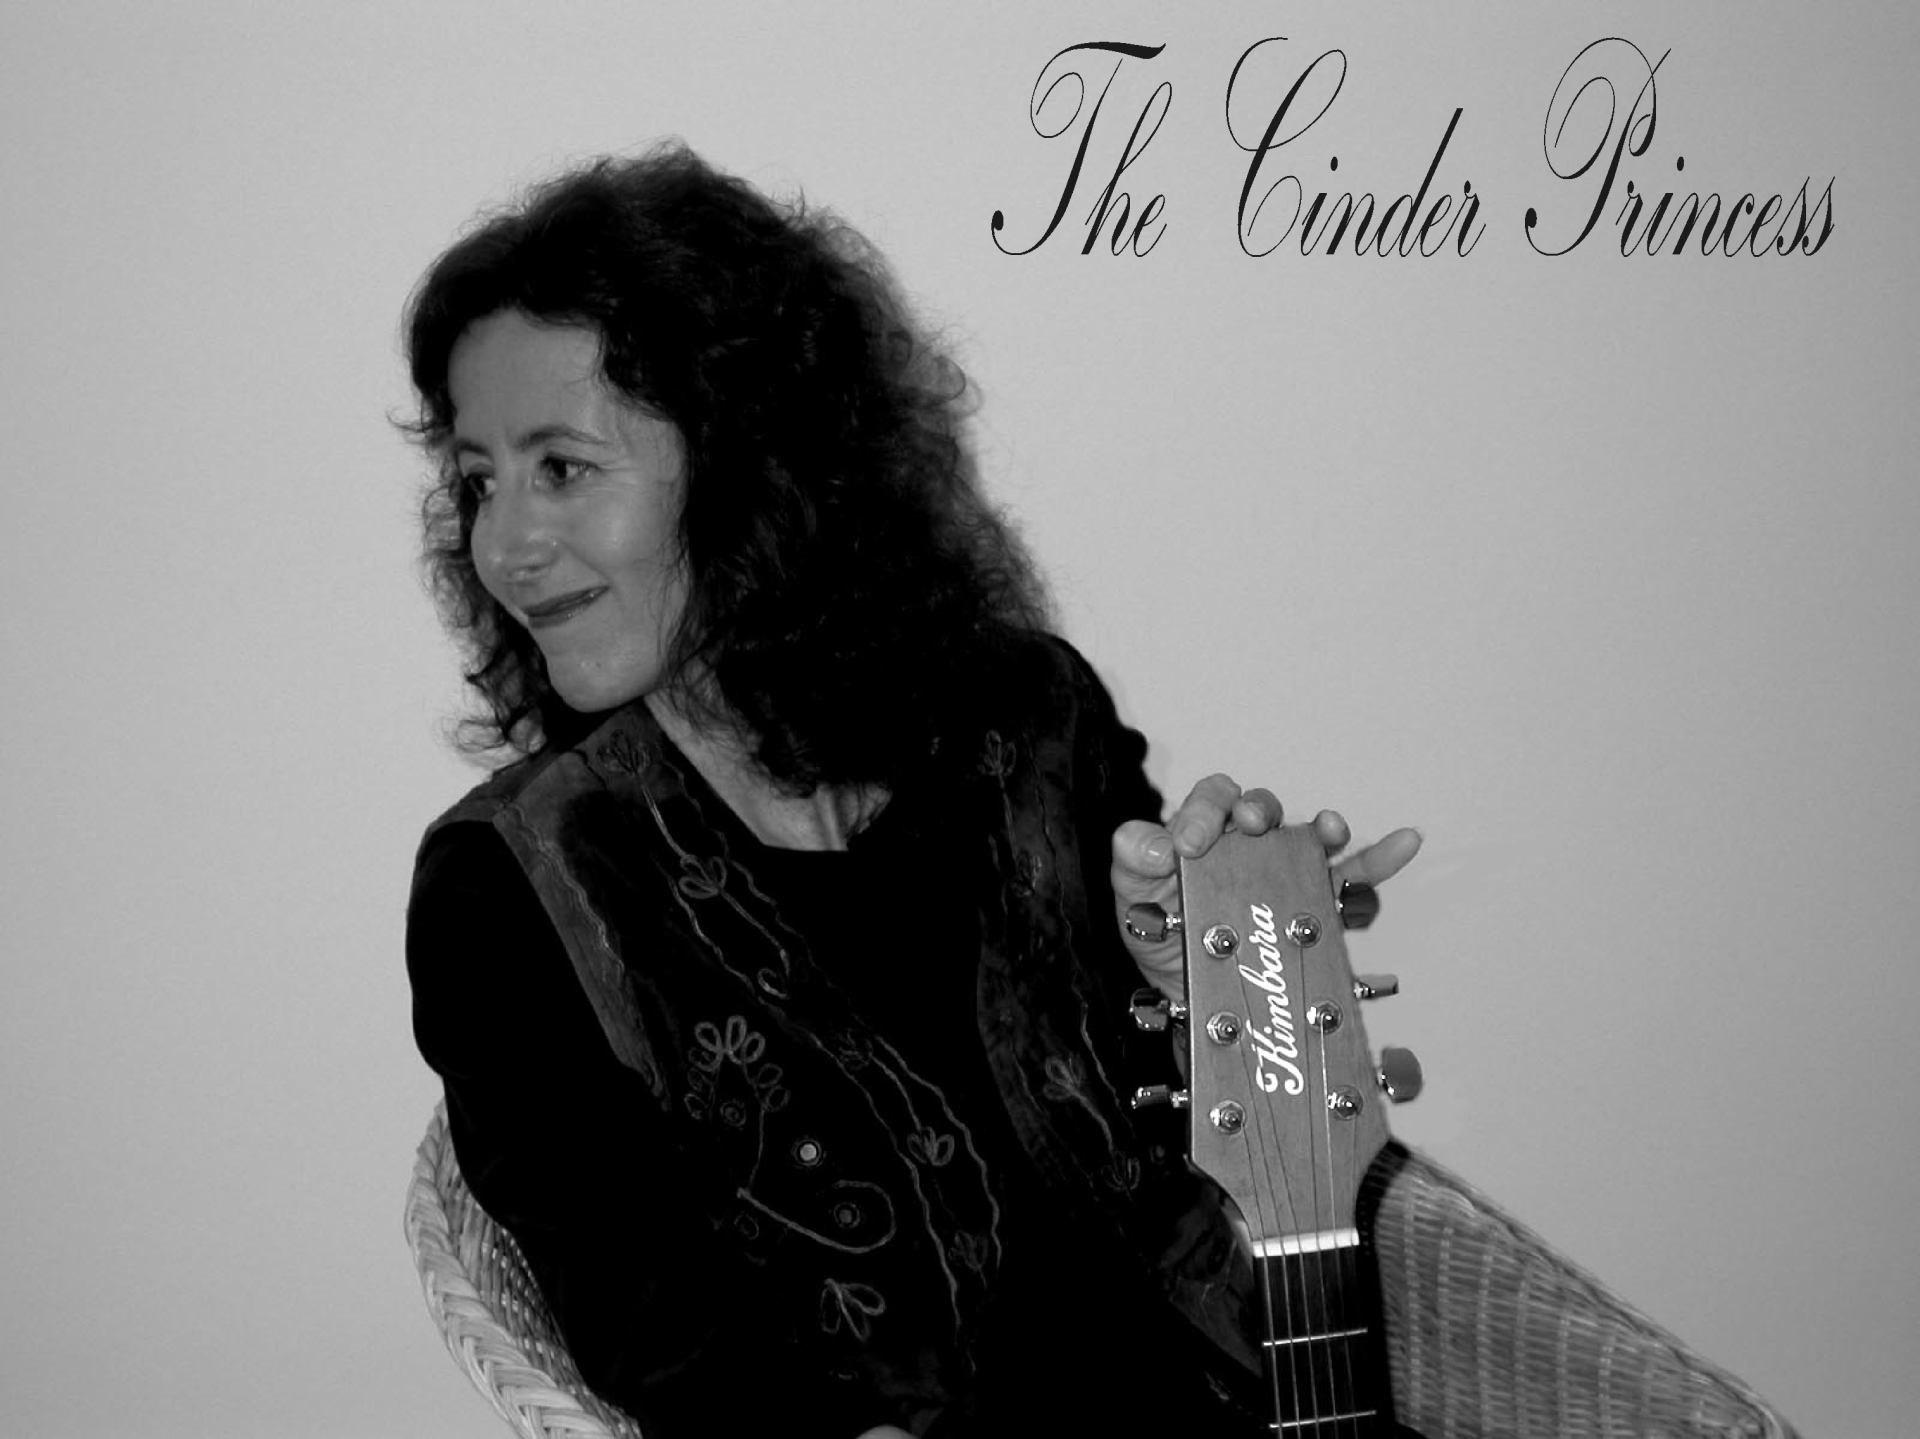 Cinder Princess UK Female Folk Garden Records